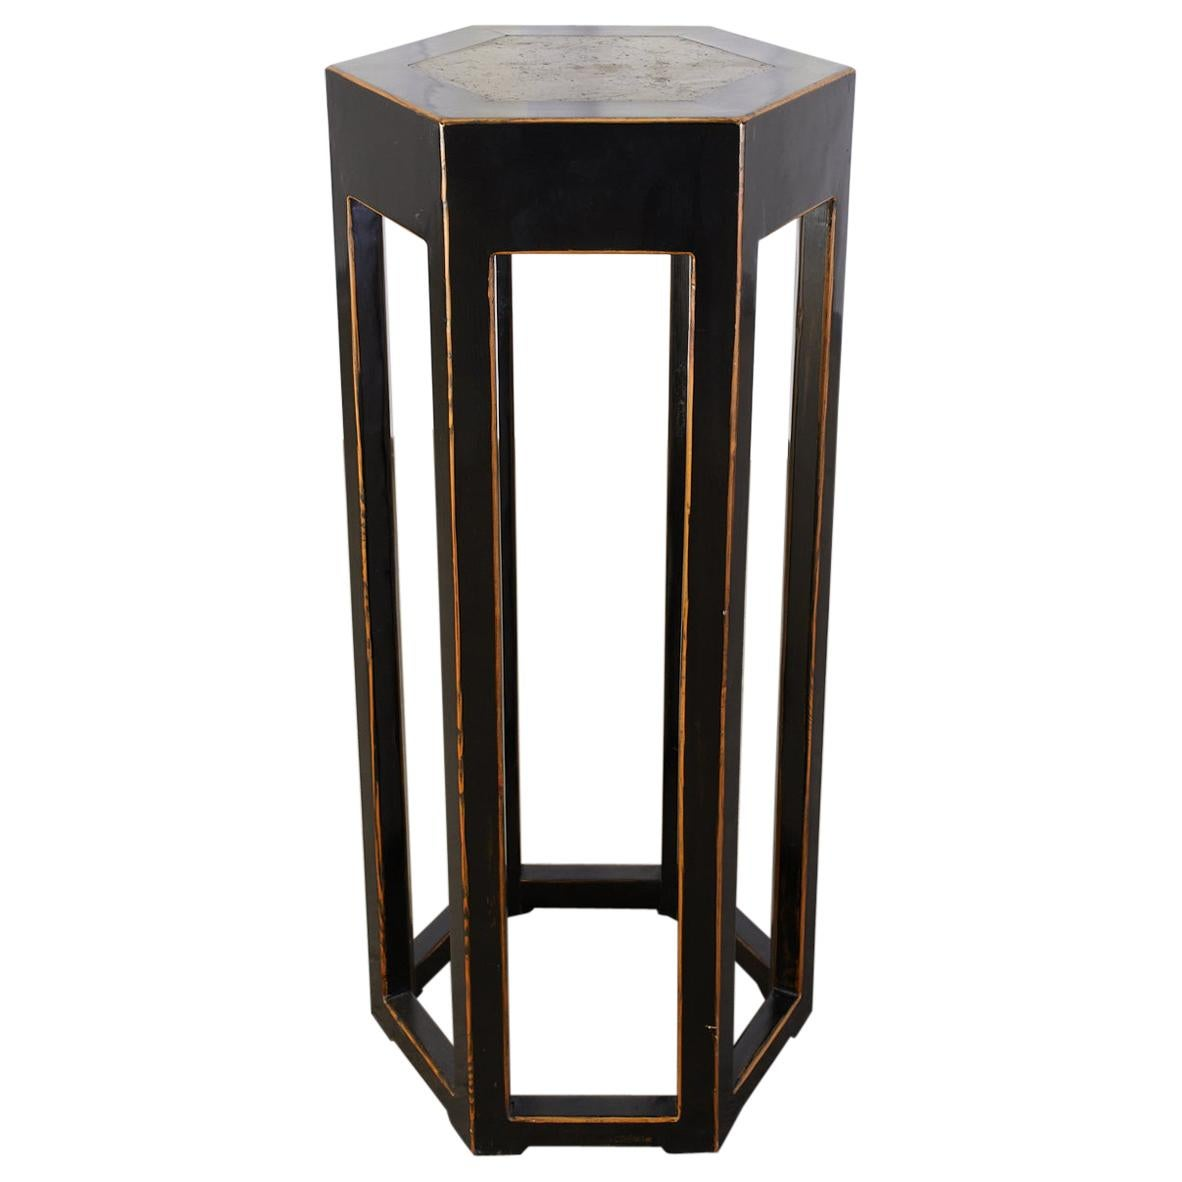 Chinese Hexagonal Lacquered Hardwood Pedestal Table